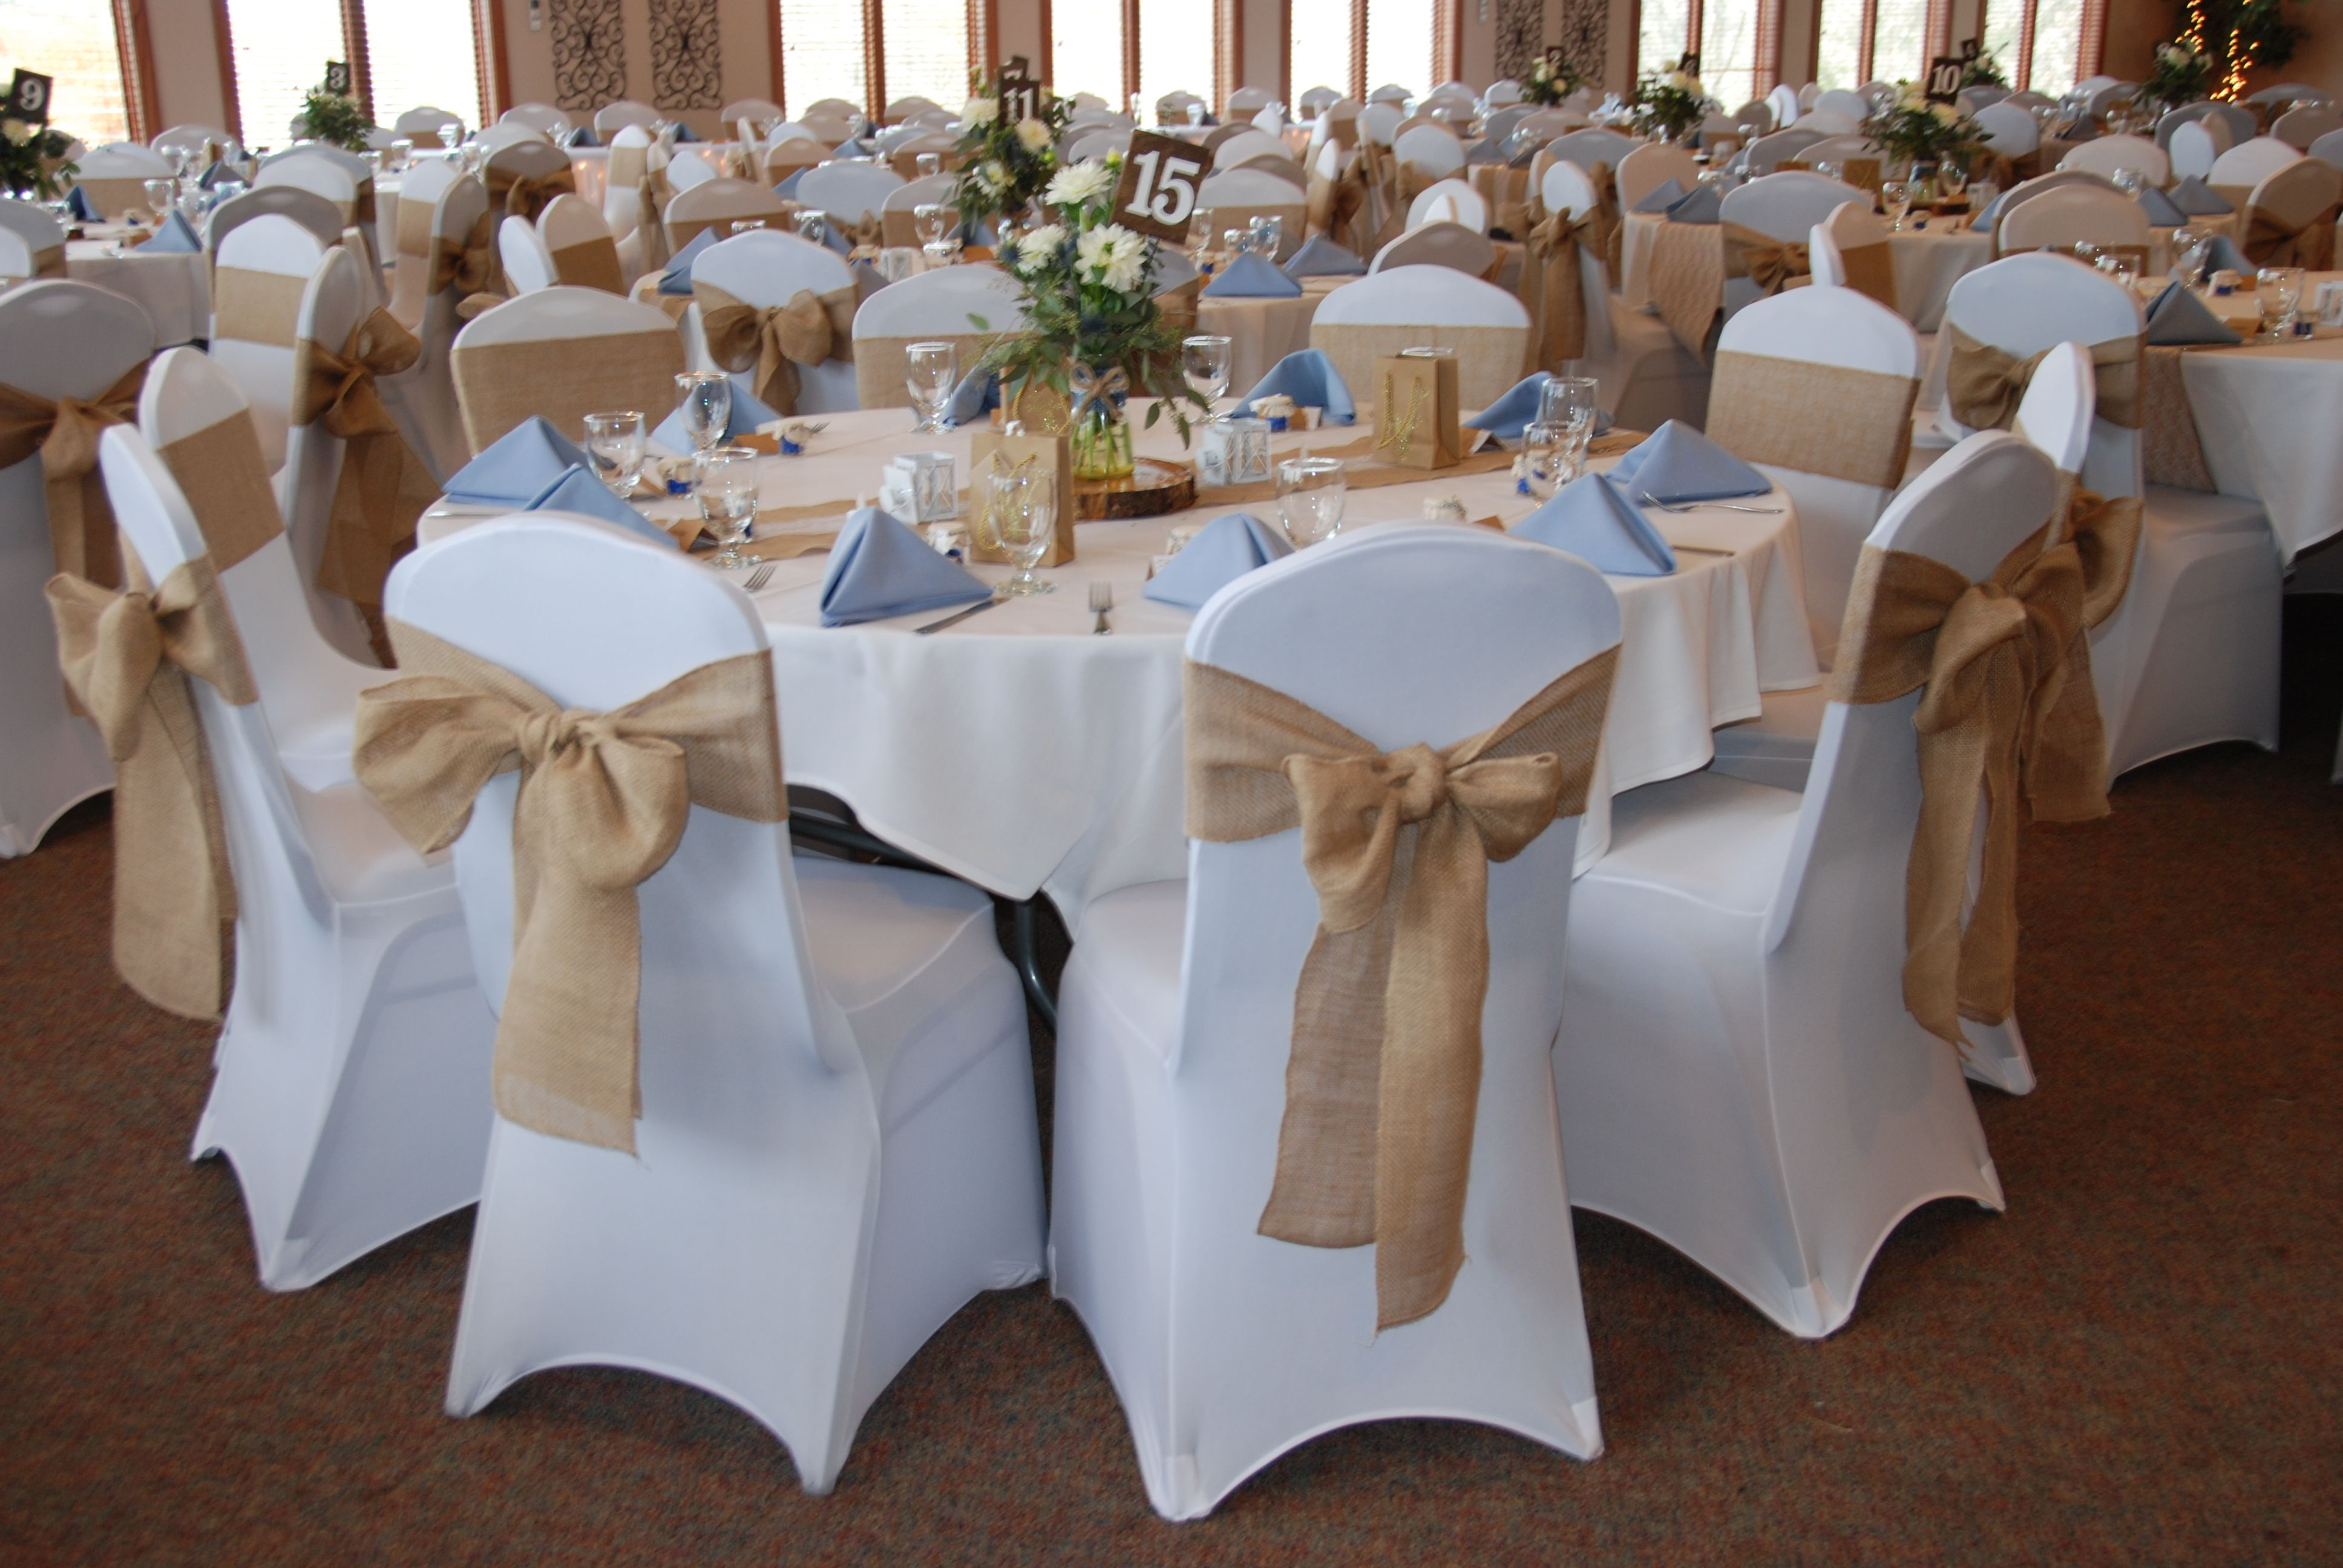 Cream Chair Covers For Weddings Cover Hire Reading Berkshire Burlap Runner And Sashes With White Spandex Light Blue Accent Color